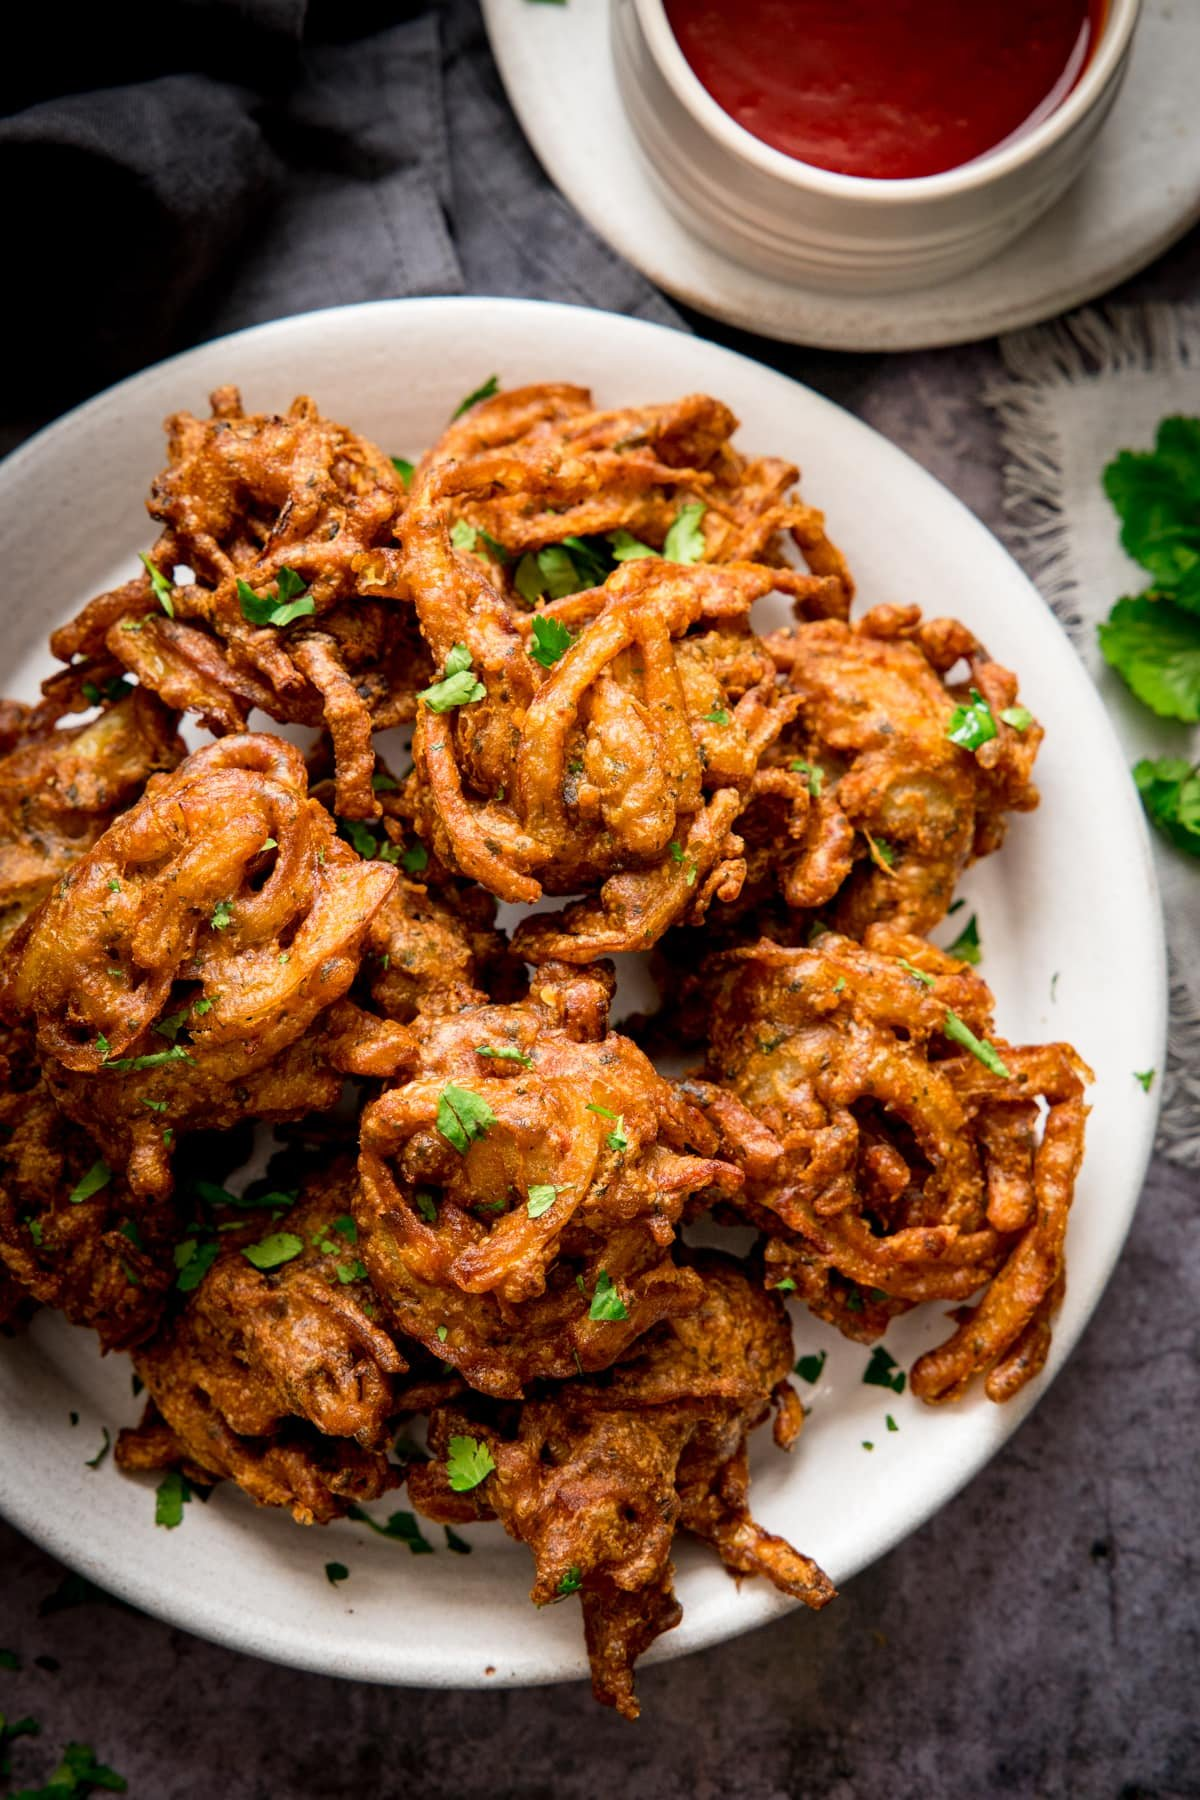 Onion bhajis on a white plate. Small white bowl filled with chilli sauce just in shot.